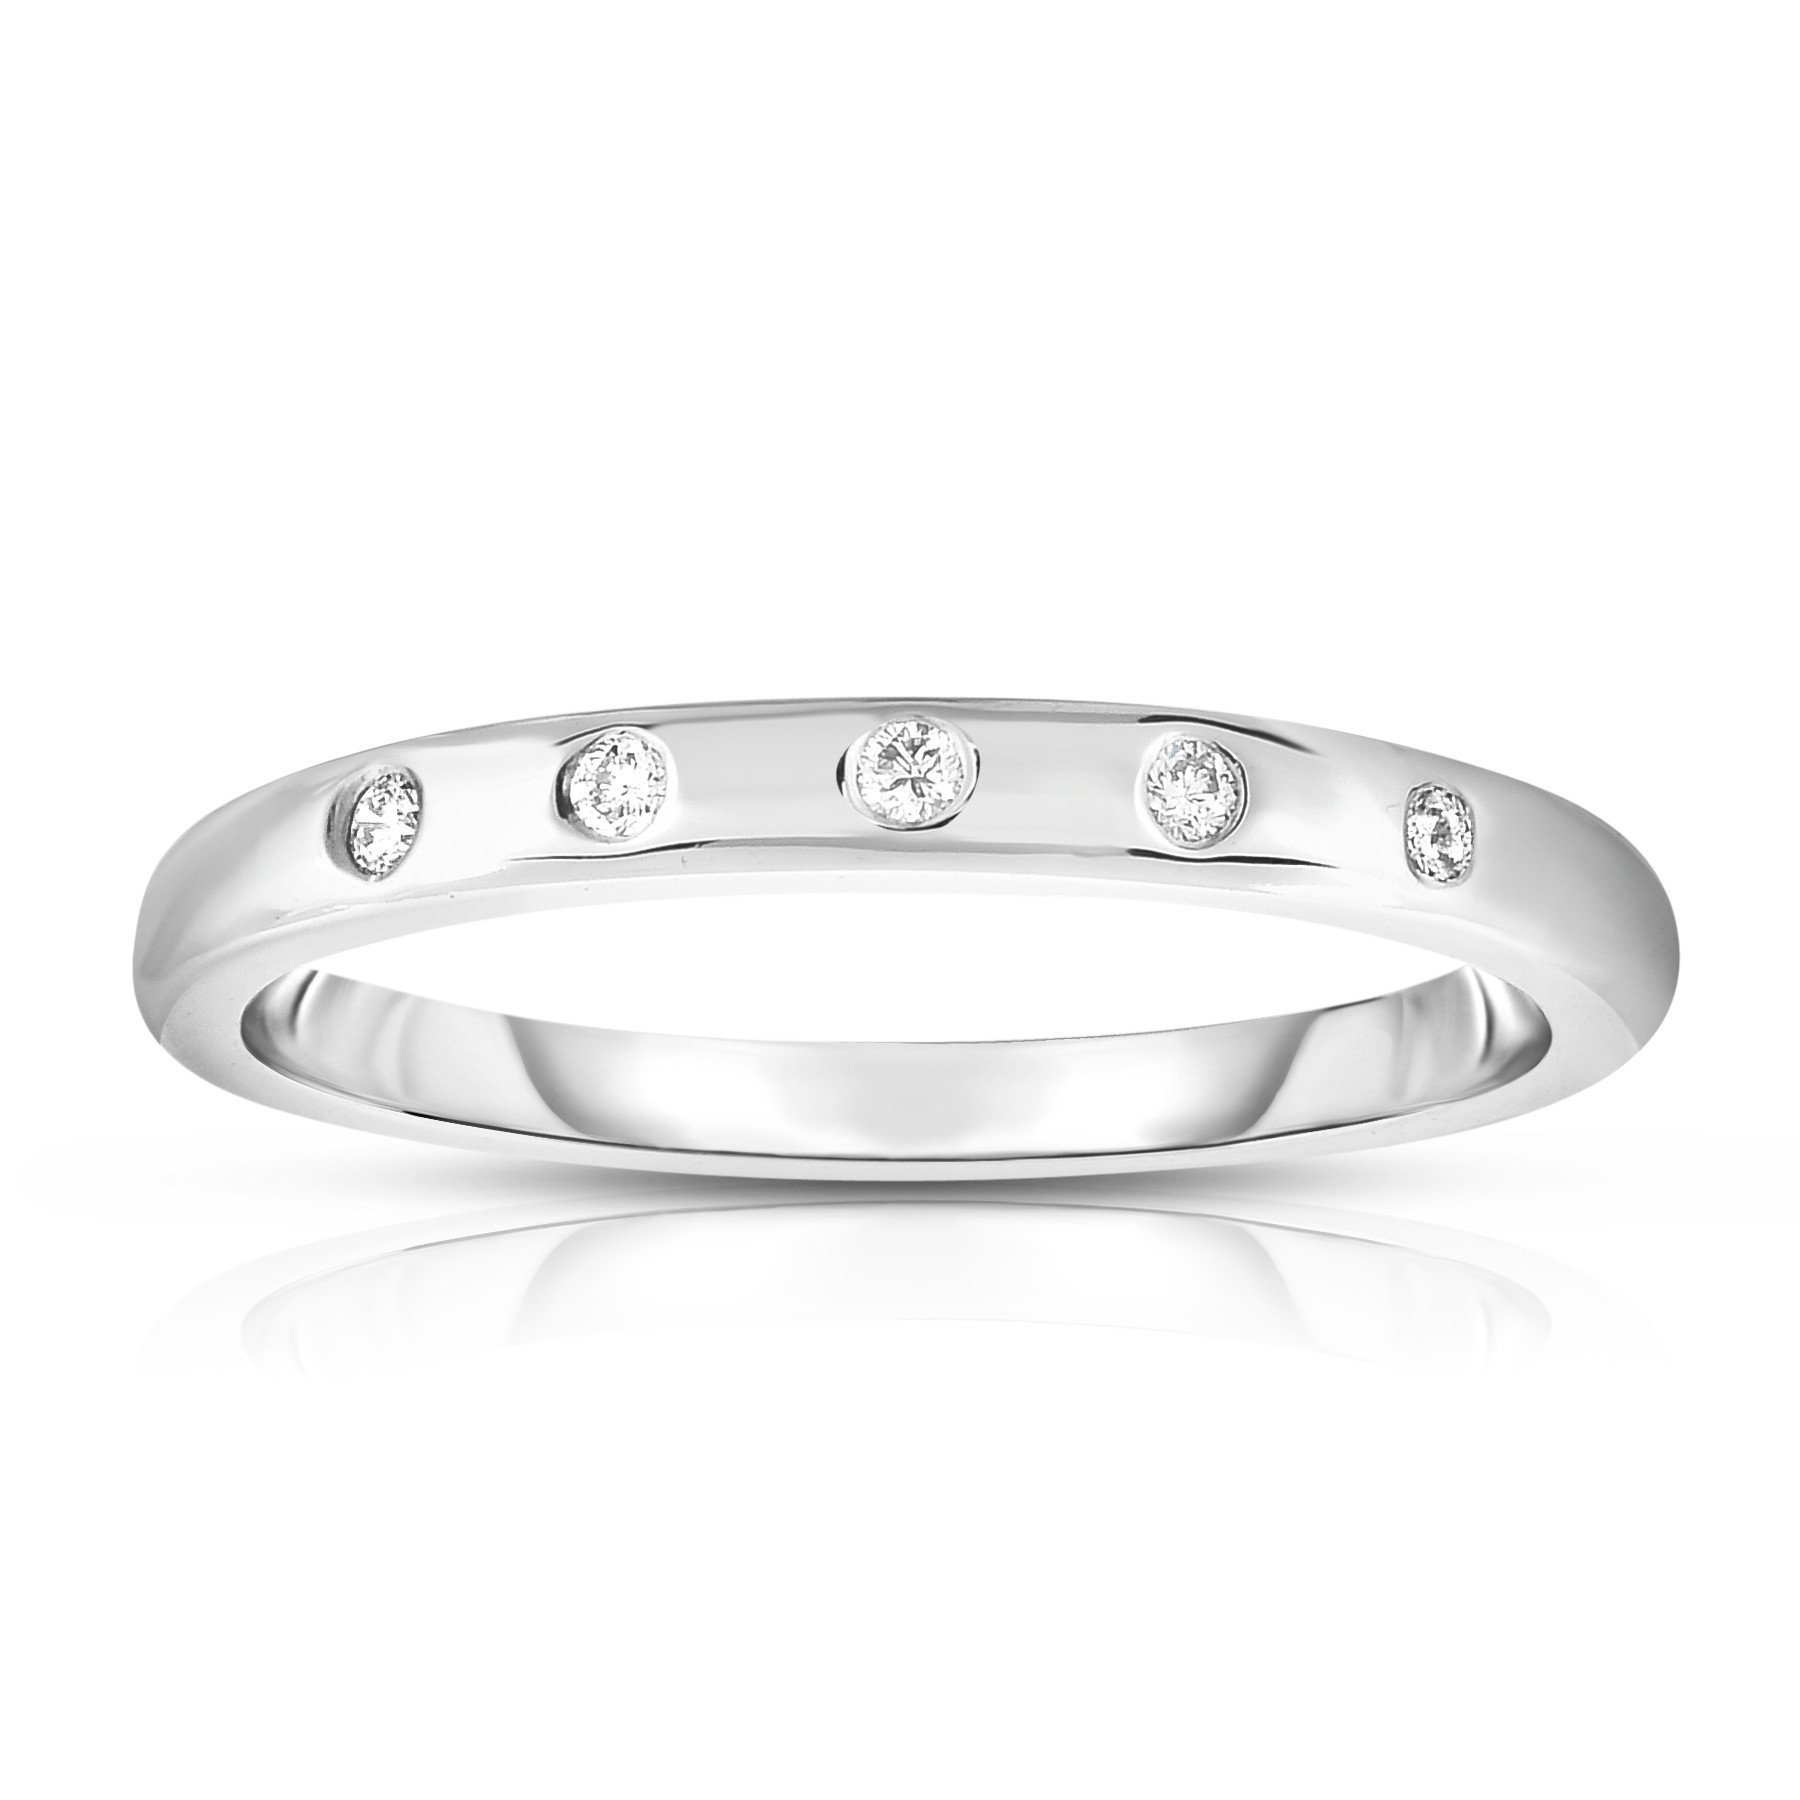 Noray Designs 14K White Gold (0.06 Ct, G-H, SI2-I1 Clarity) Stackable Ring. Available in sizes 4 to 9.